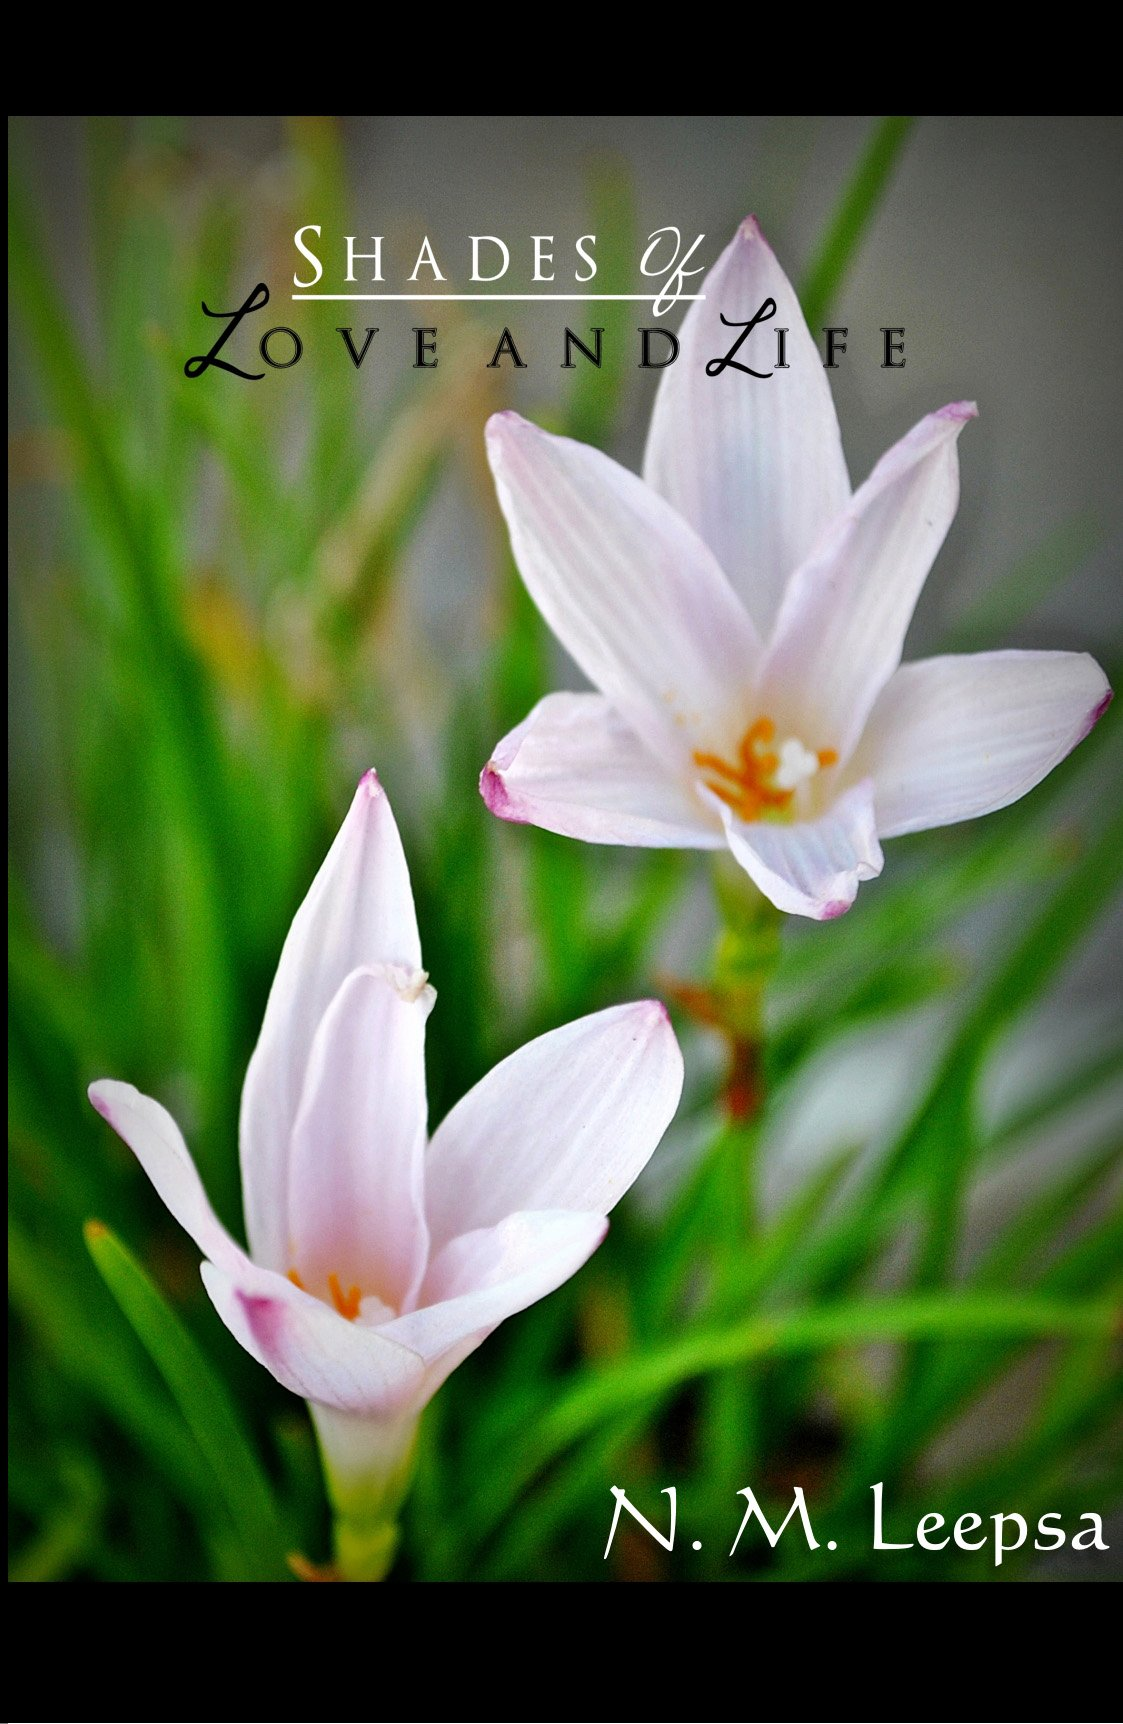 Shades of Love and life